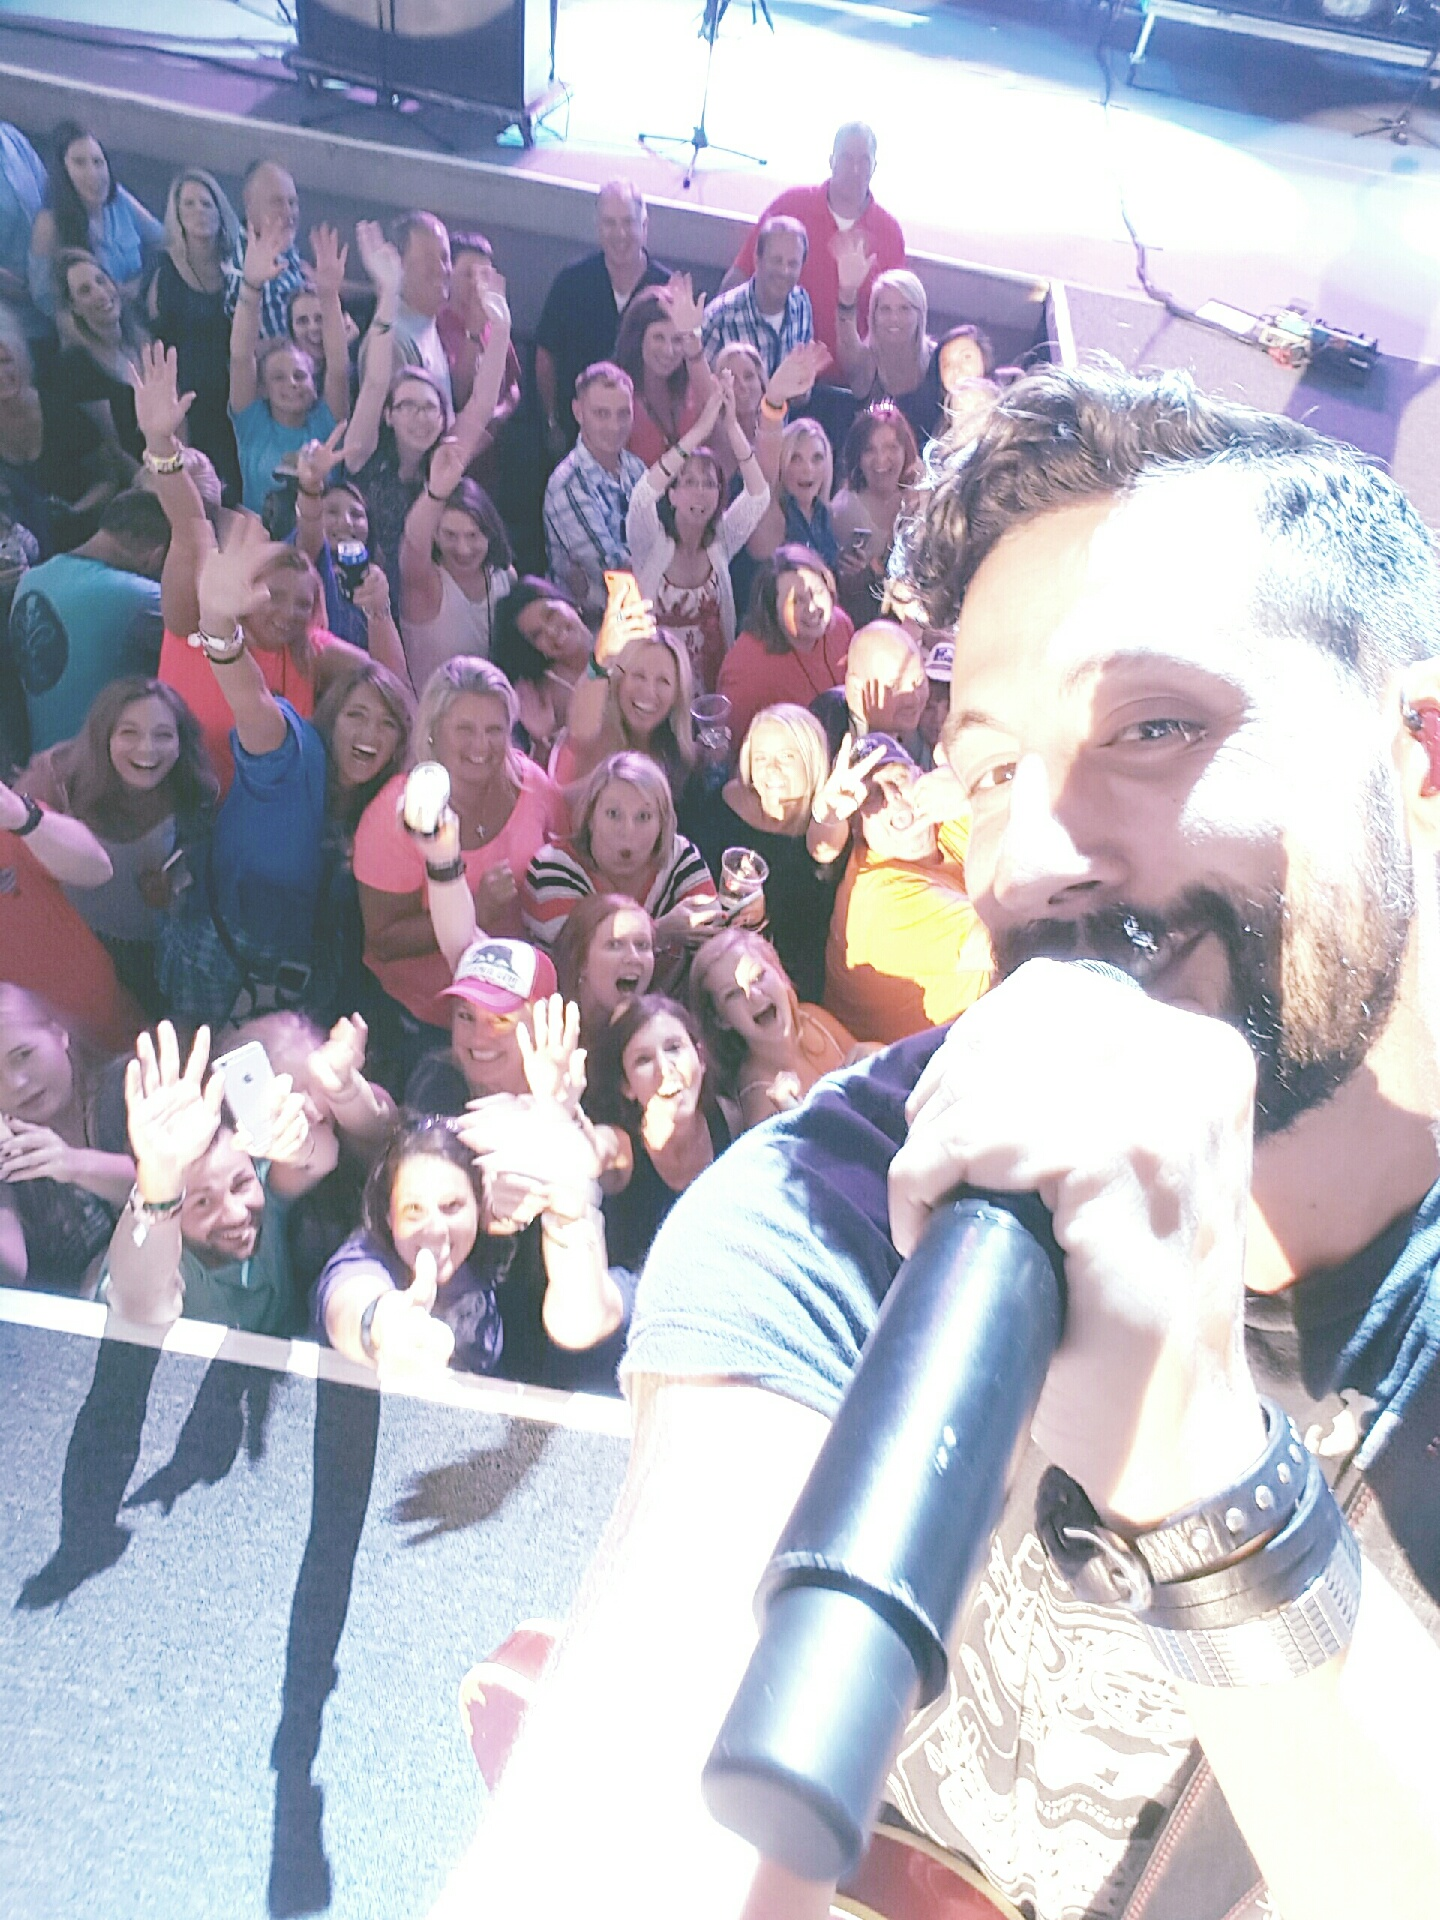 Matt from Old Dominion took a selfie with us!